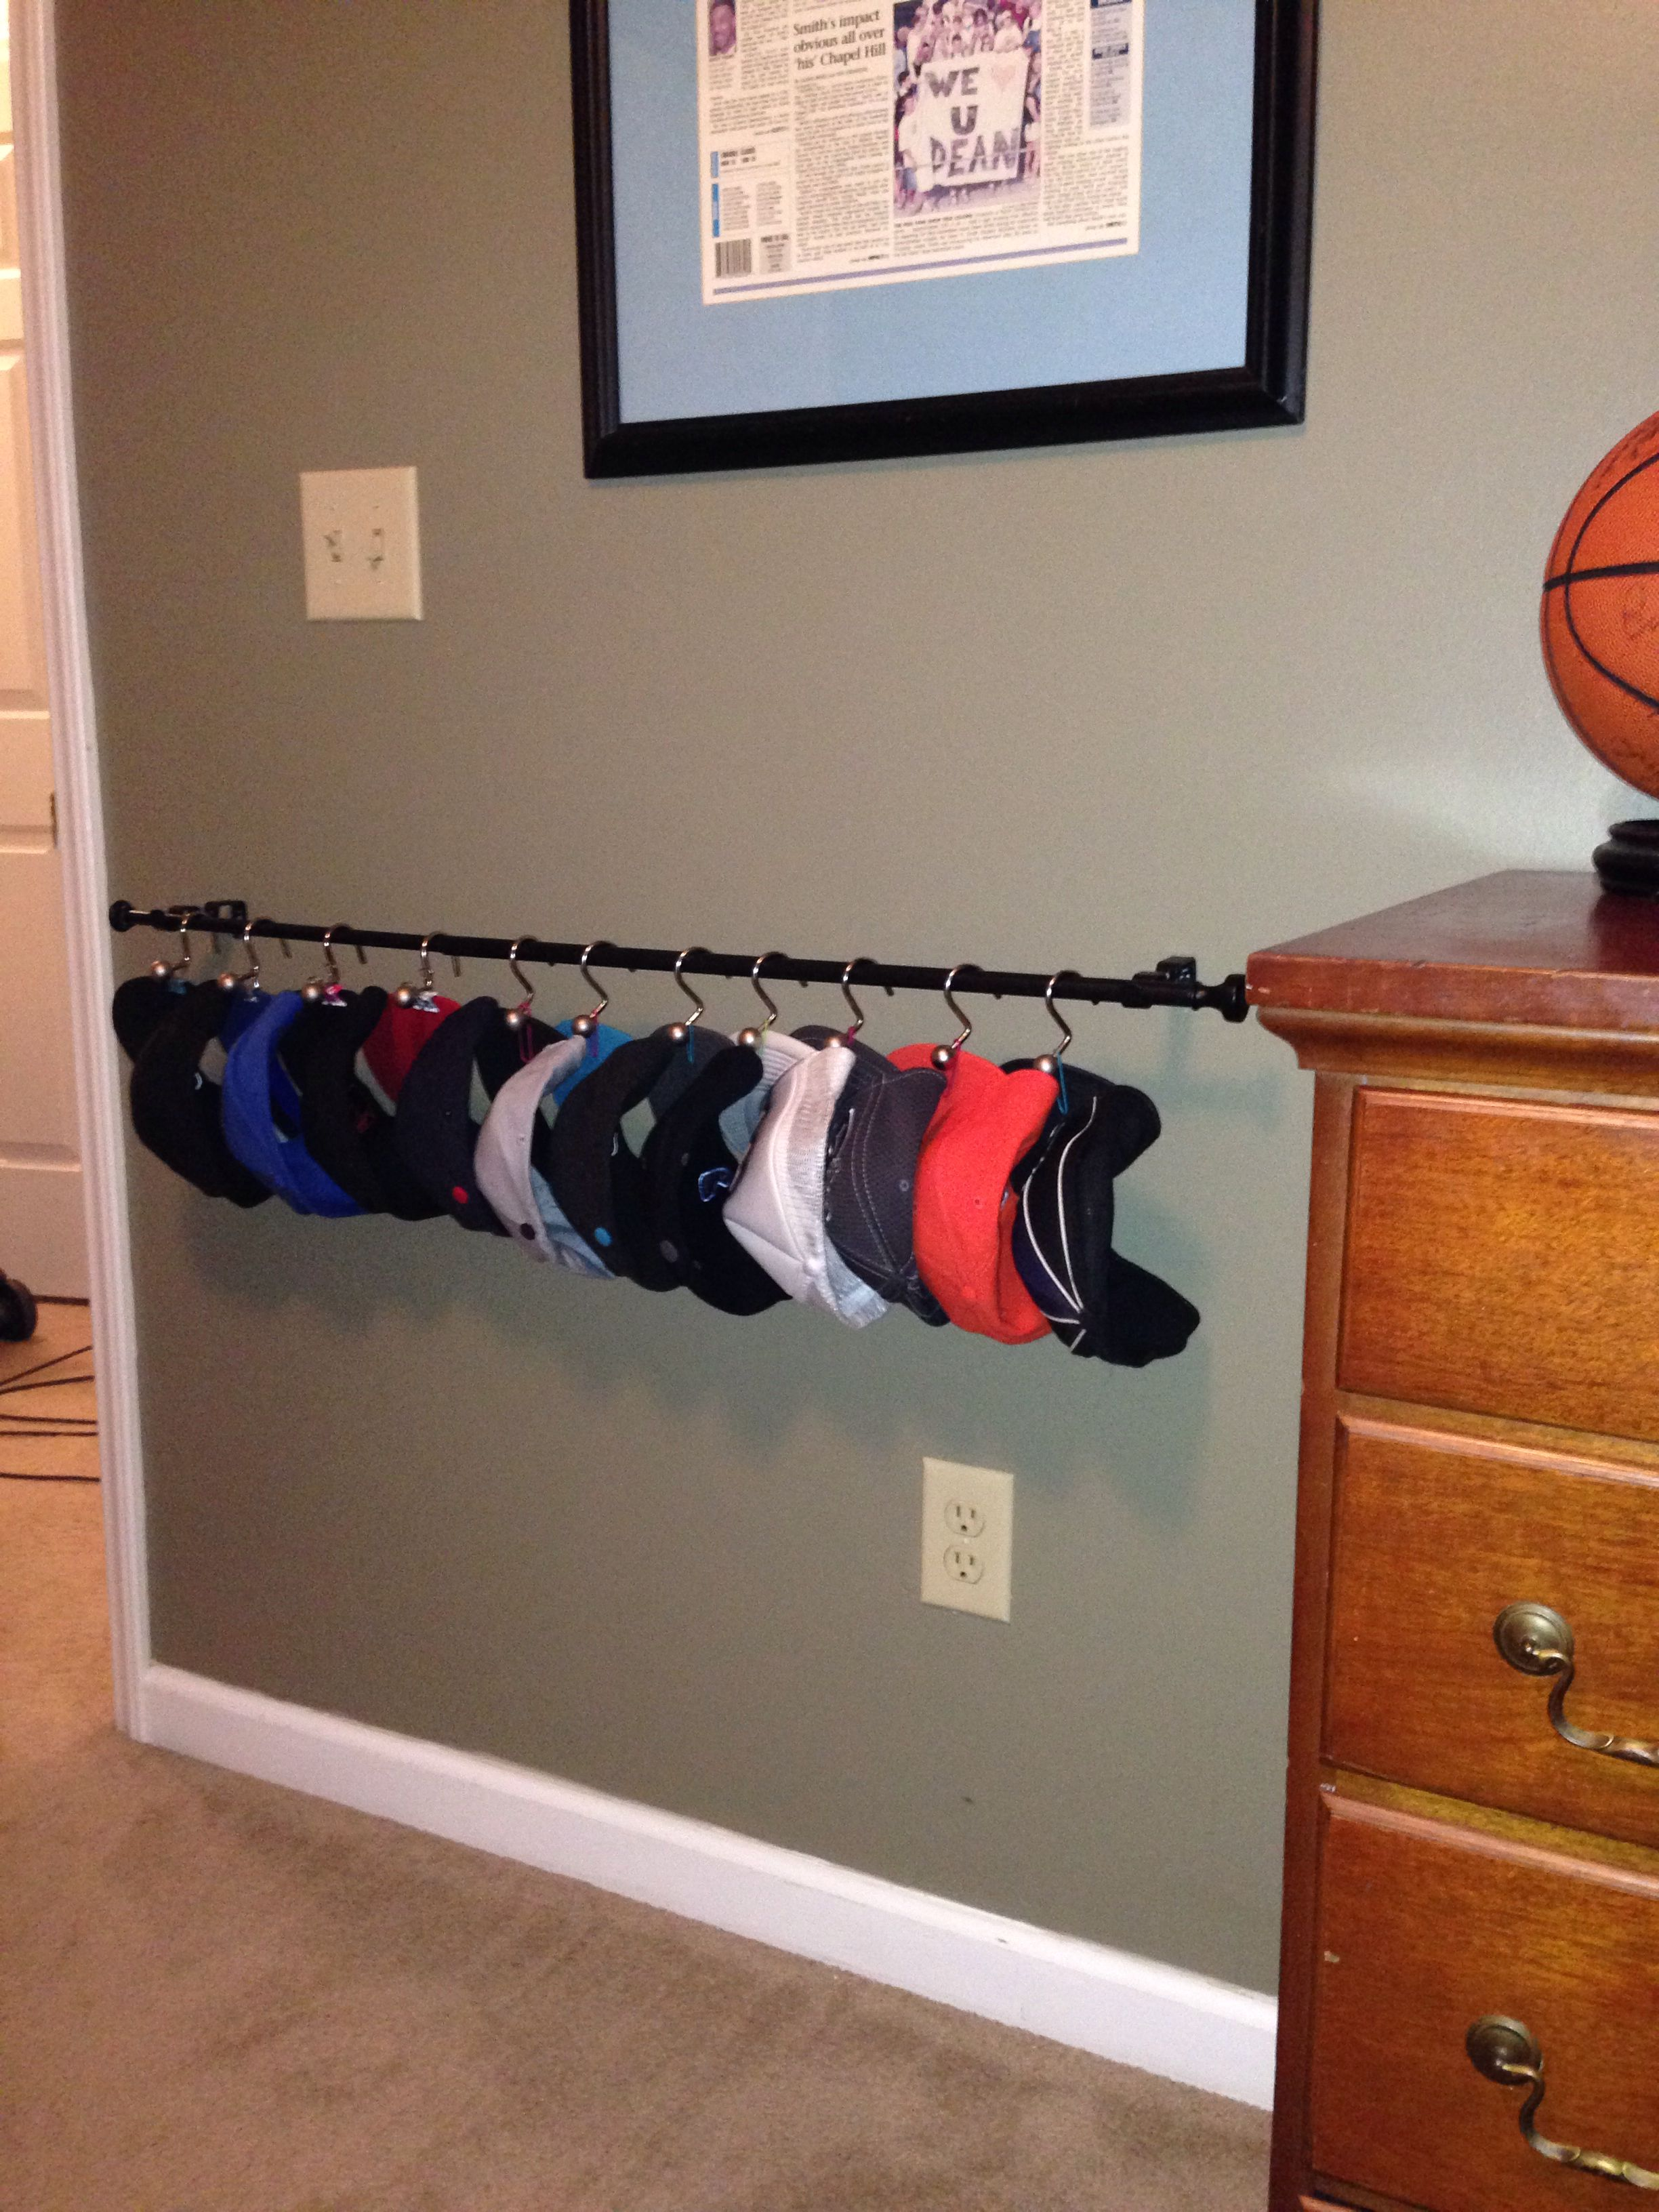 Hat Holders For Walls 13 43 Hat Rack Ideas Easy And Simple For Sweet Home New